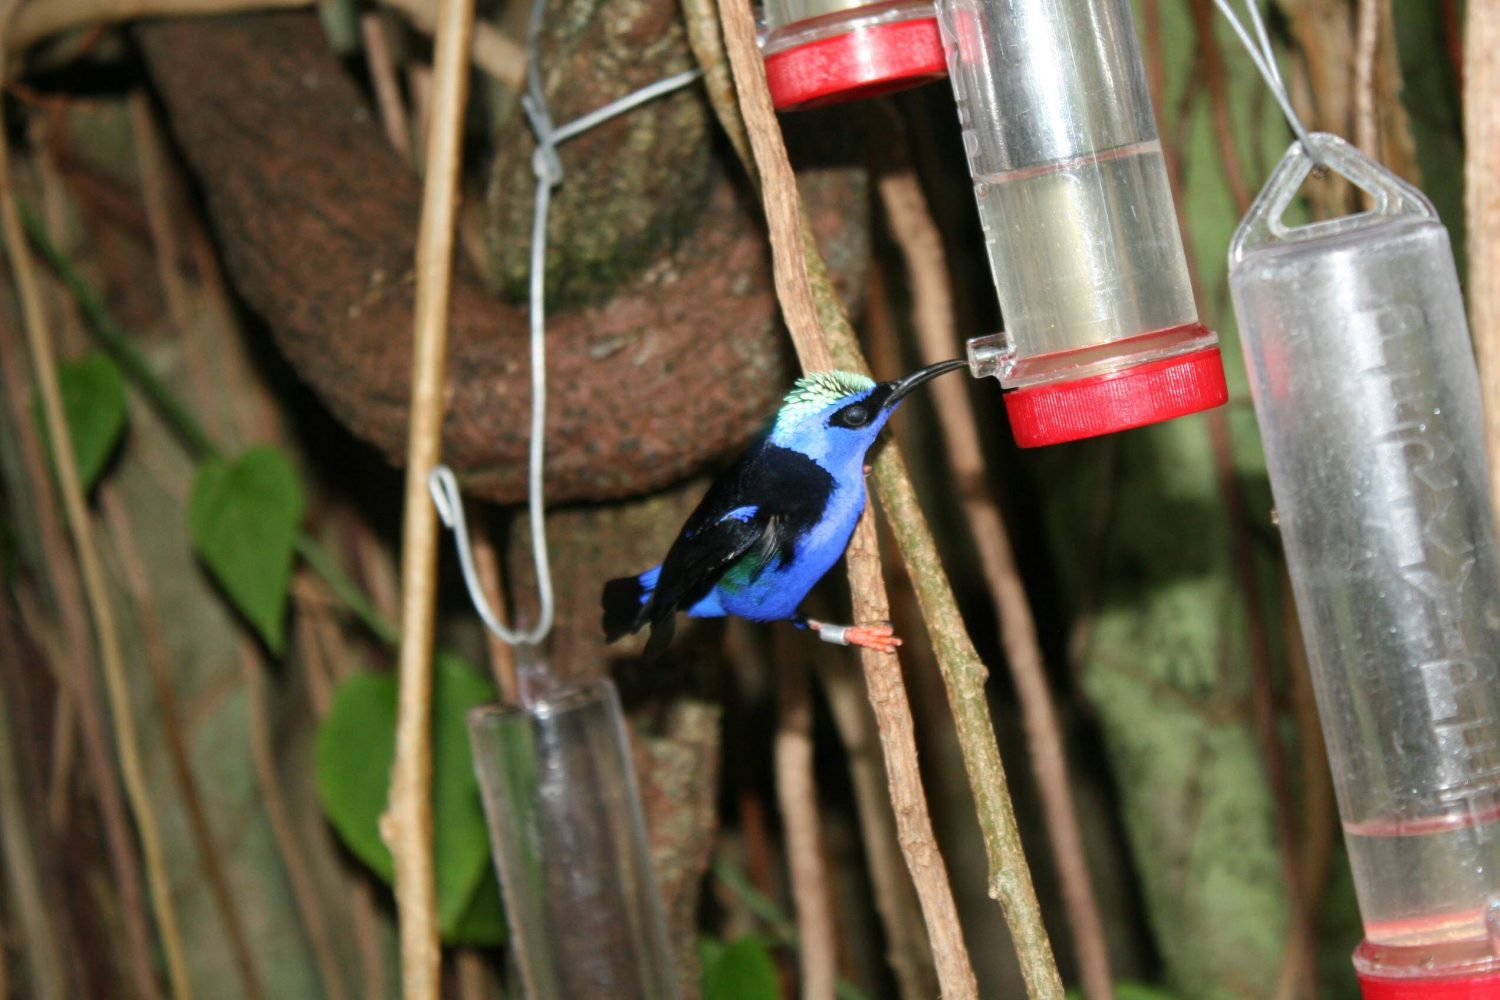 Red-legged Honeycreeper by Nathaniel Silva